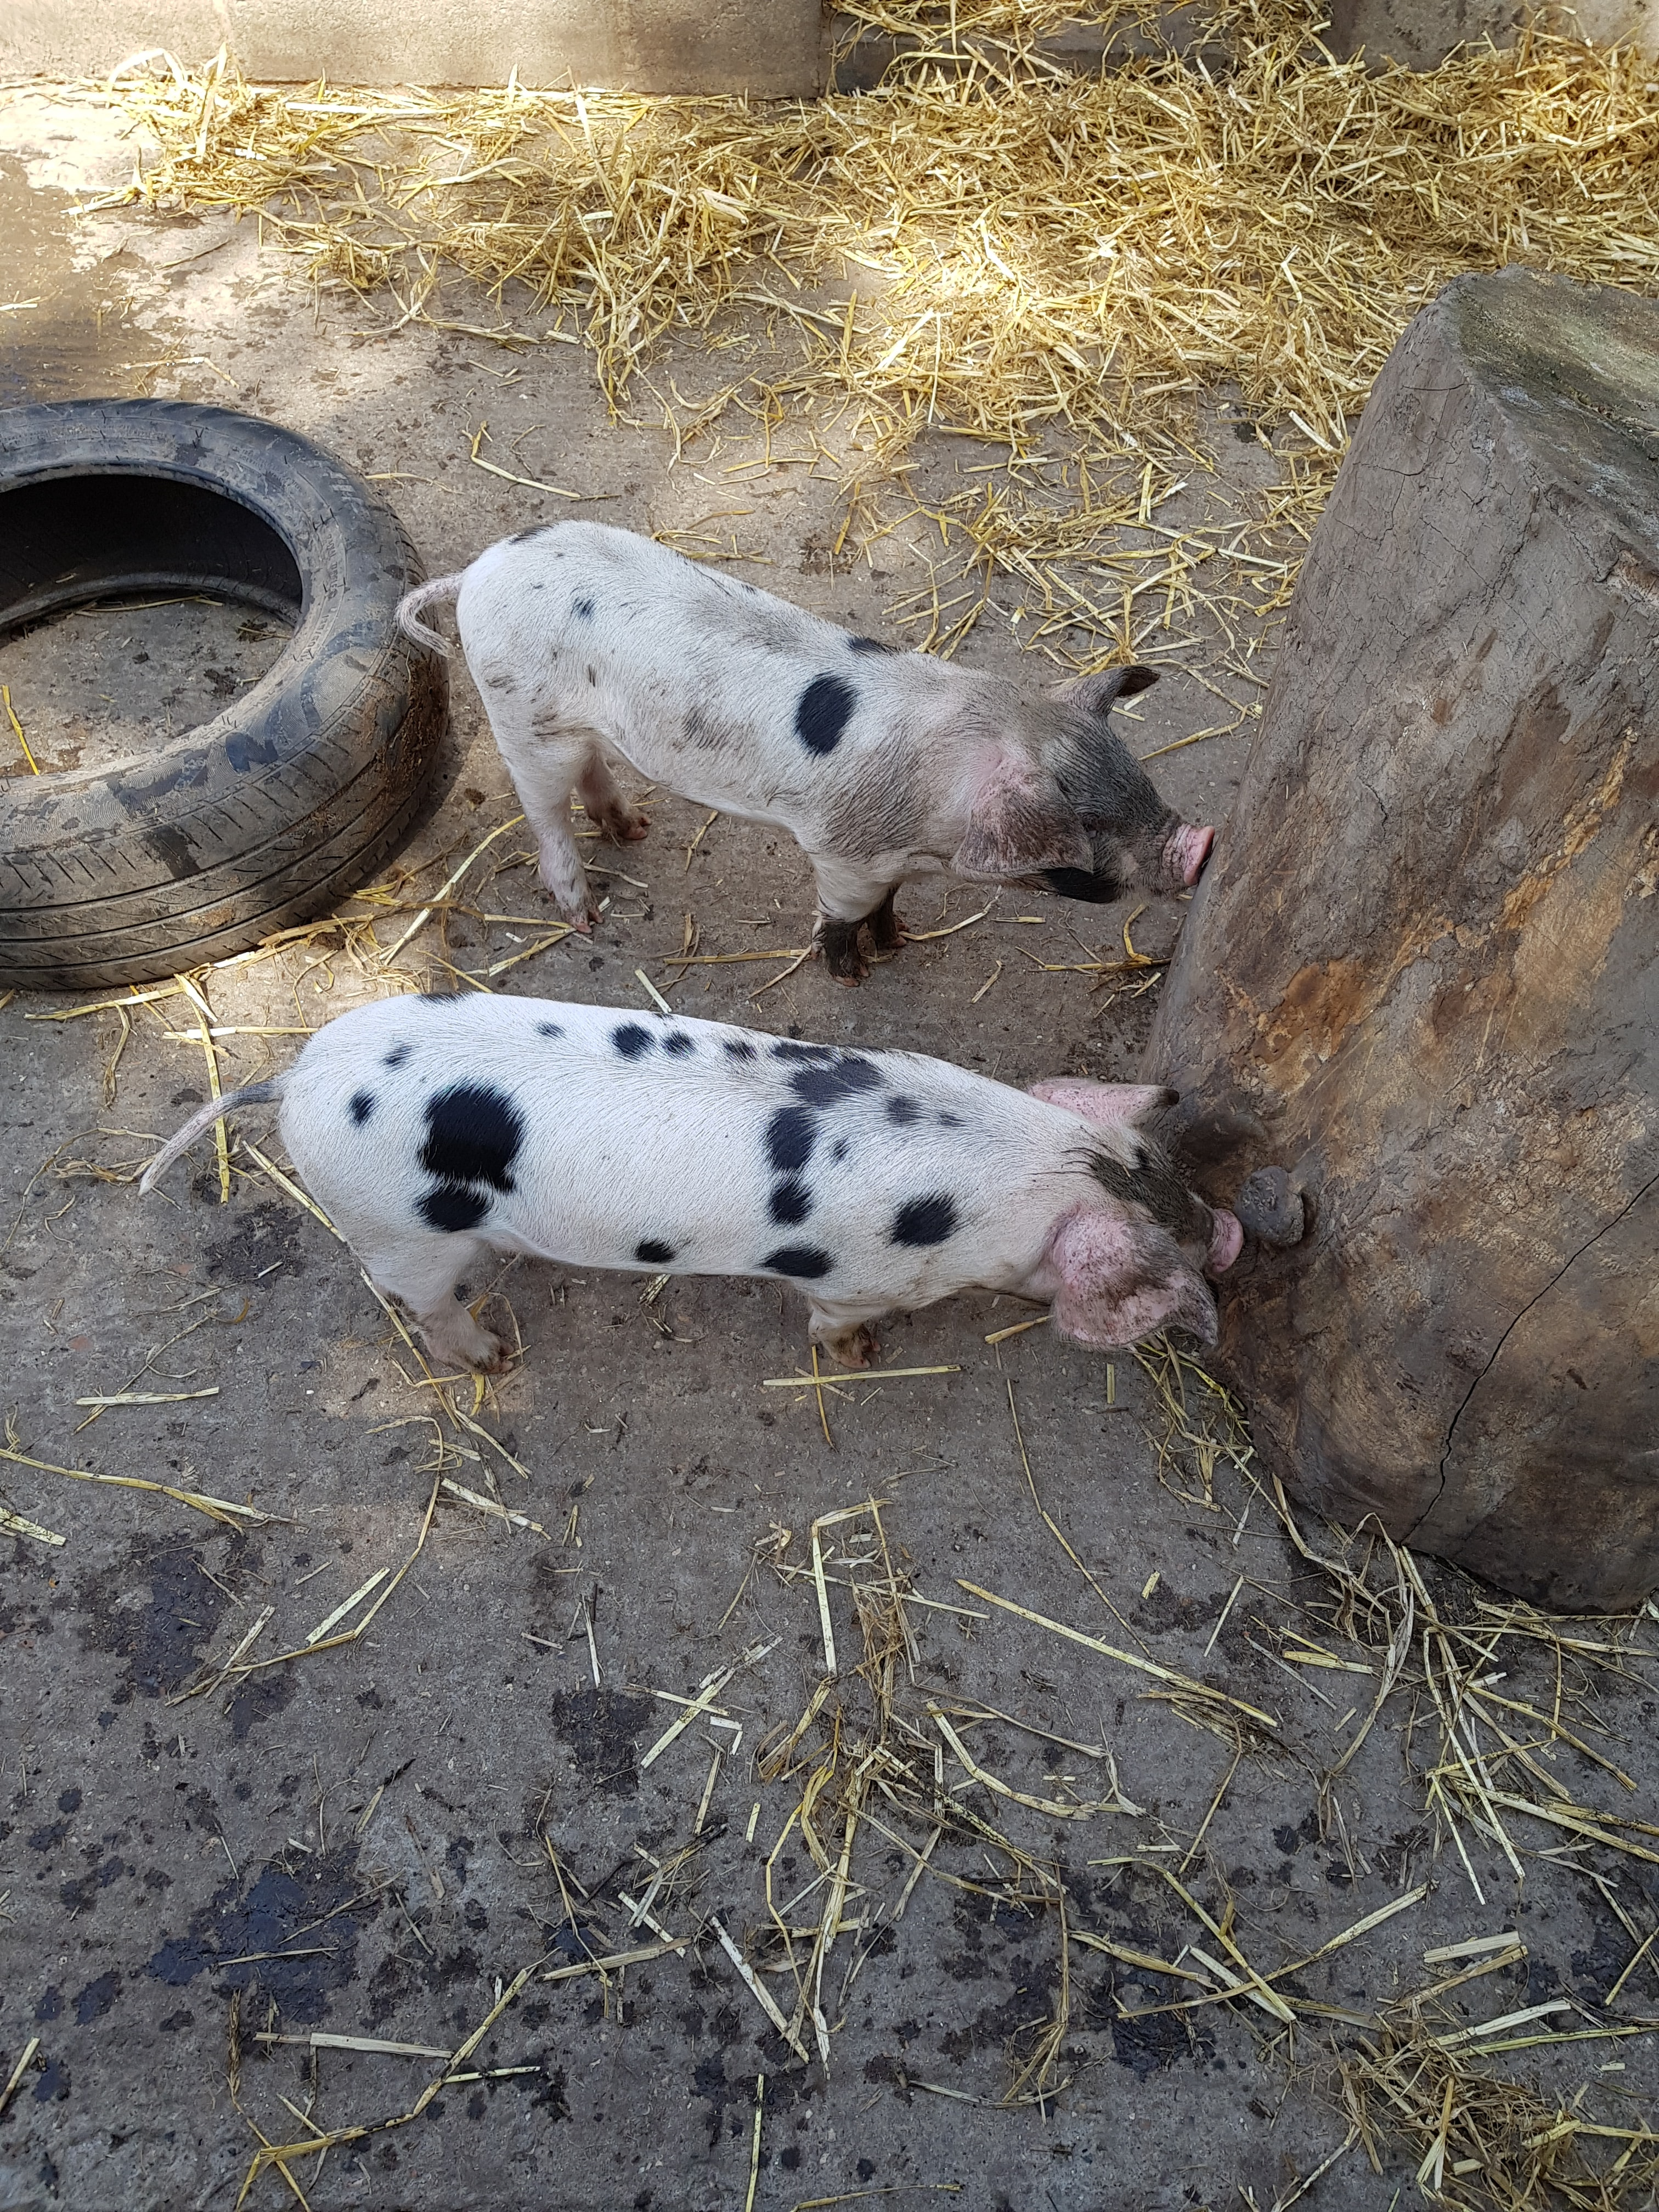 two white-and-black piglets in front of wood log